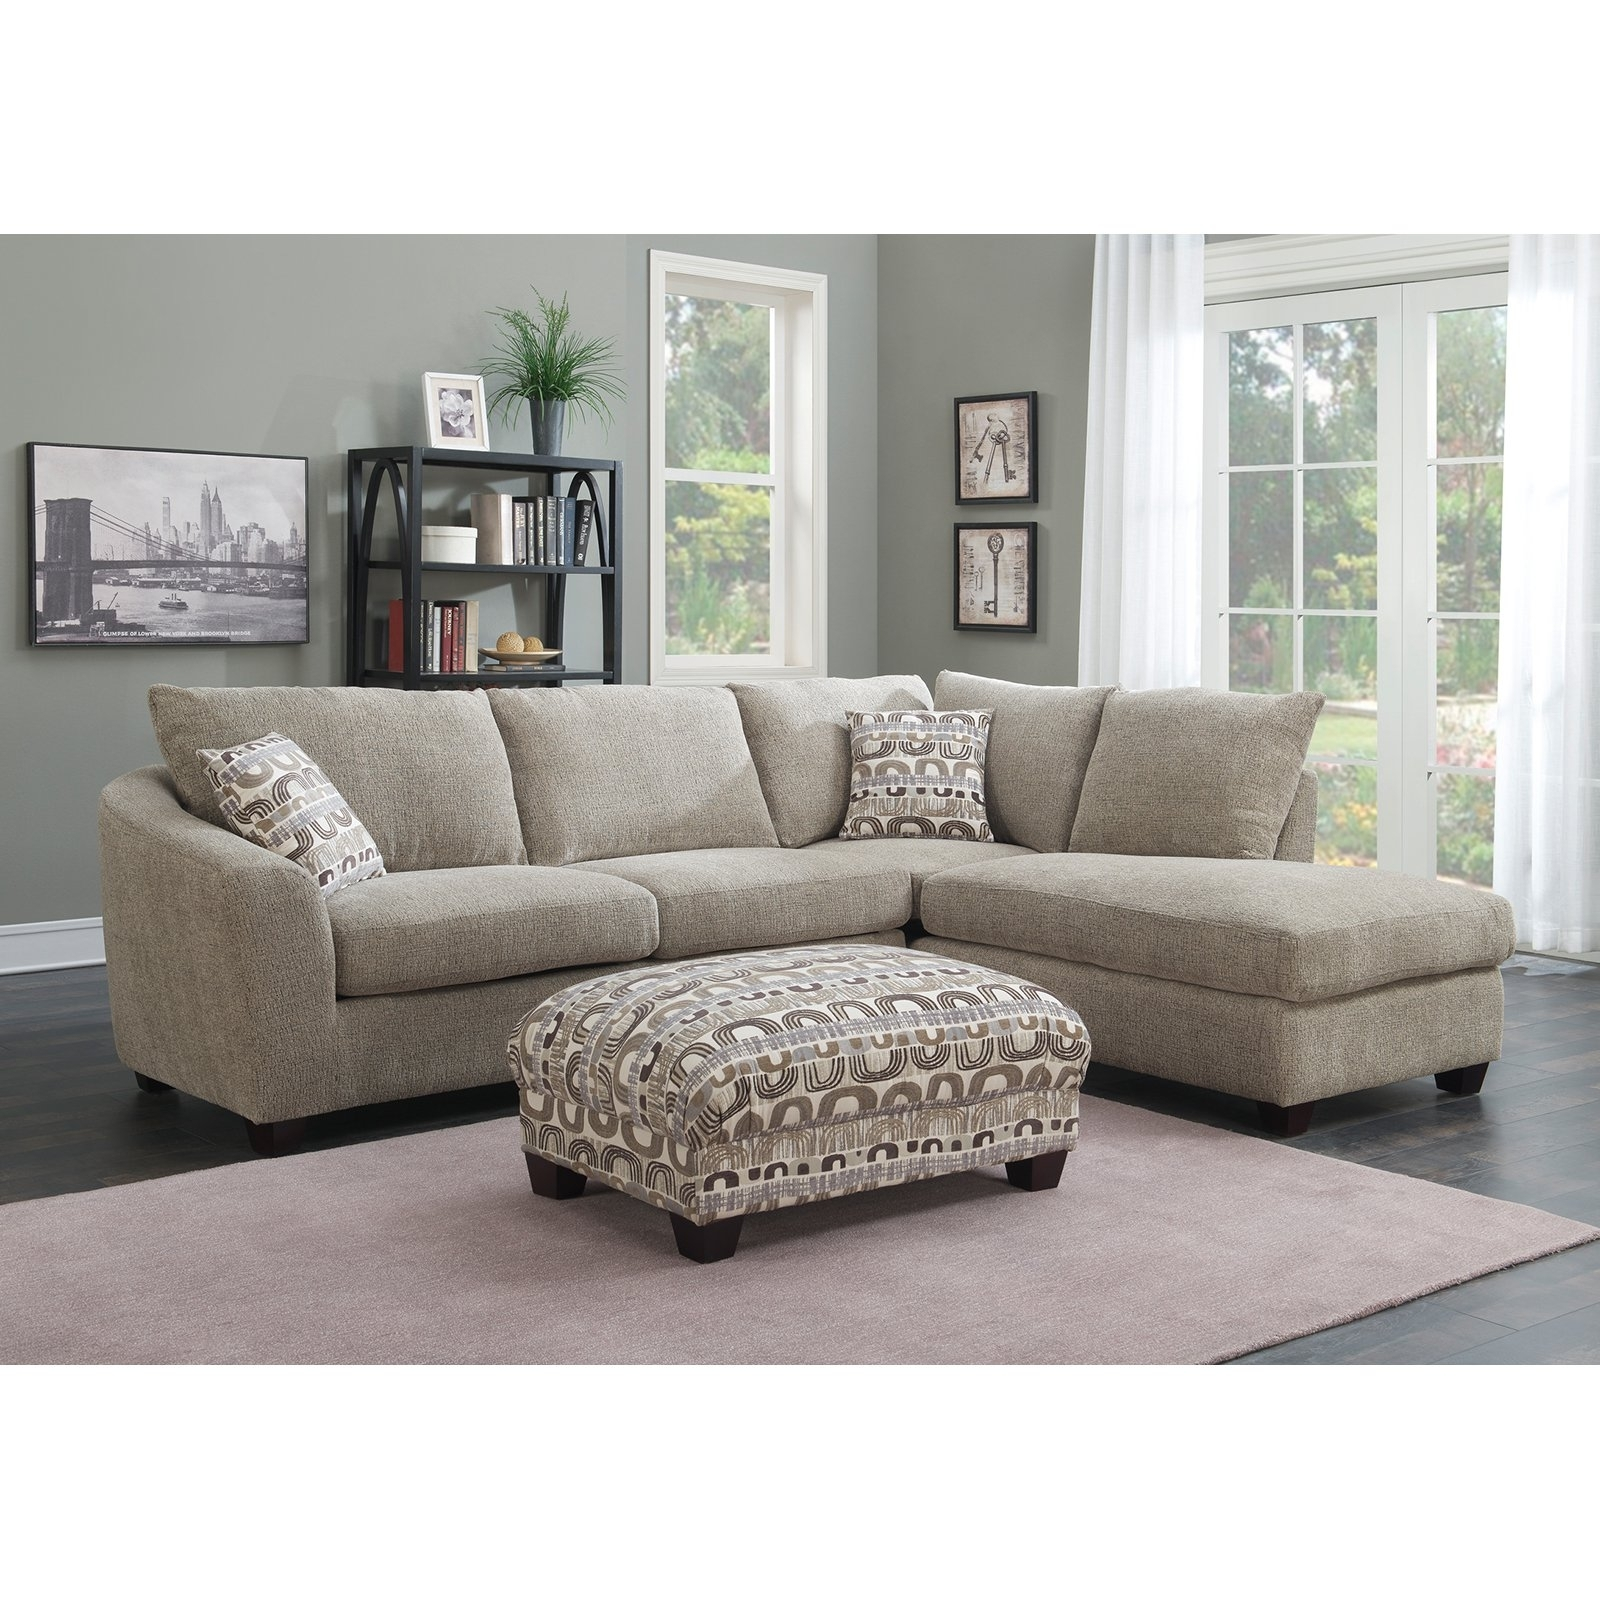 Emerald Home Urbana Piece Sectional Sofa With Chaise Couch Double with regard to Evan 2 Piece Sectionals With Raf Chaise (Image 14 of 30)